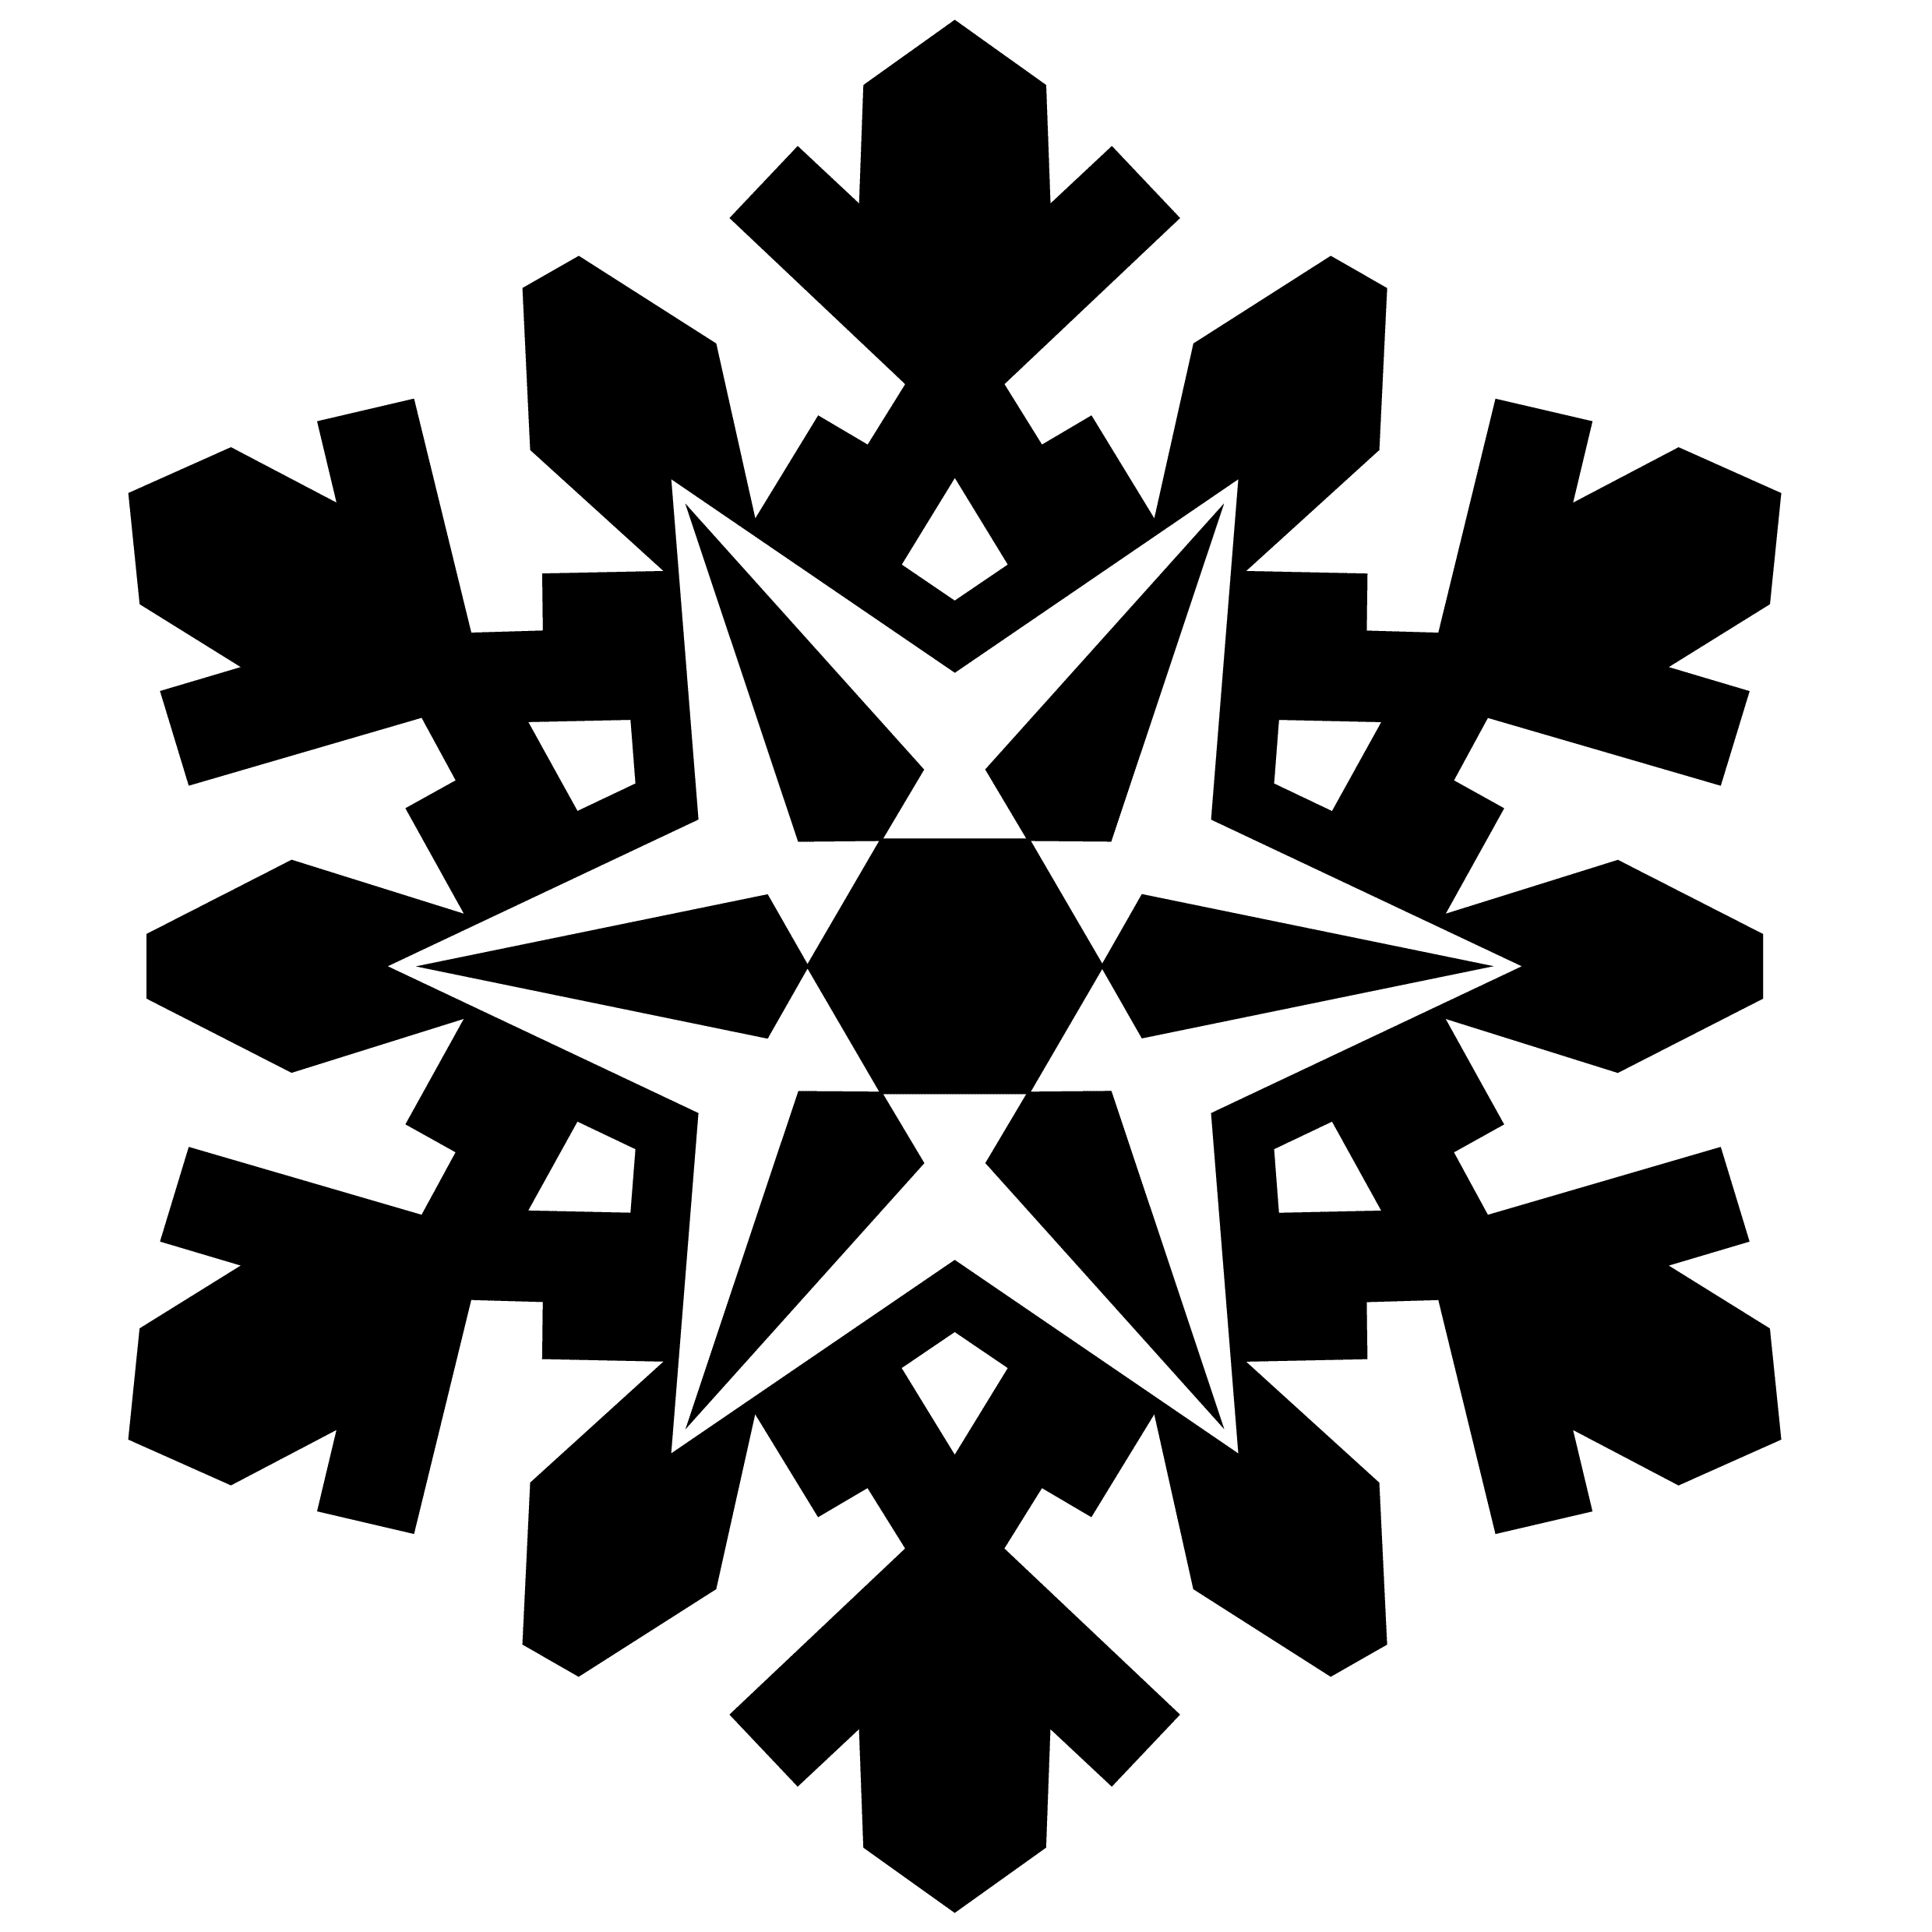 52 Snowflakes Vectors  Silhouette and Photoshop Brushes for    White Snowflake Vector Free Download